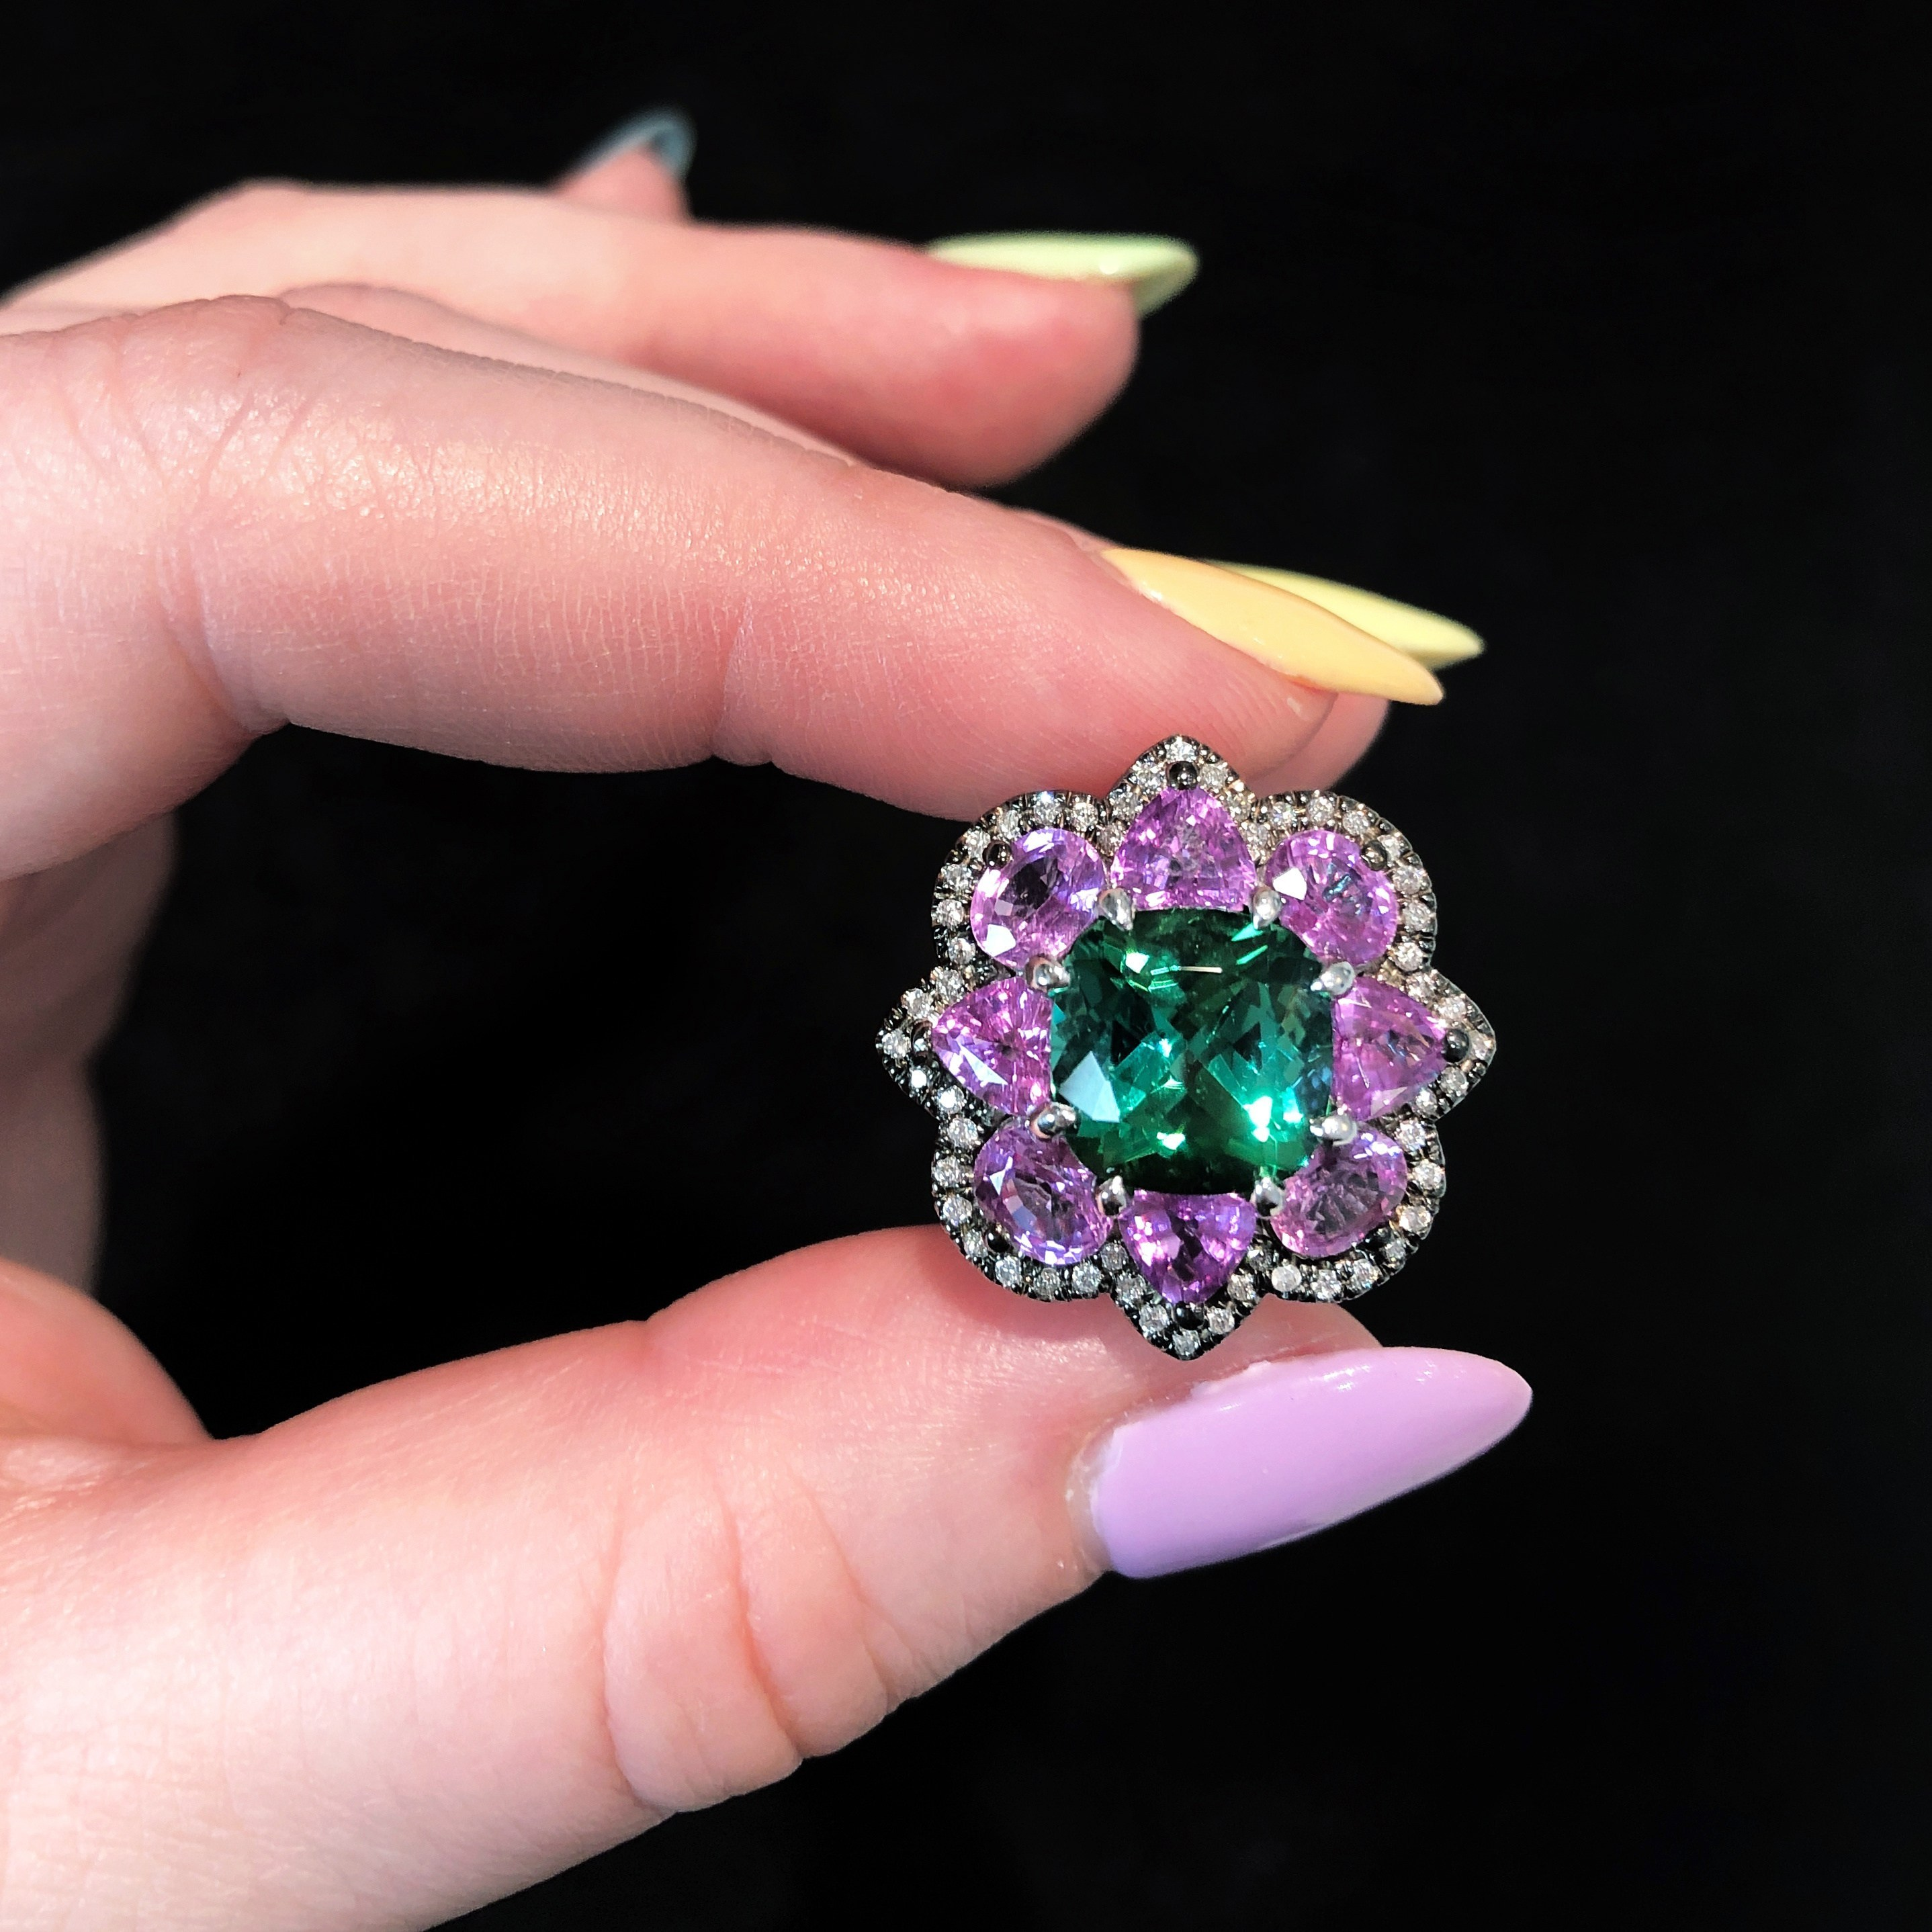 A beautiful tourmaline, sapphire, and diamond ring by Campbellian Collection. Spotted at AGTA GemFair 2019.